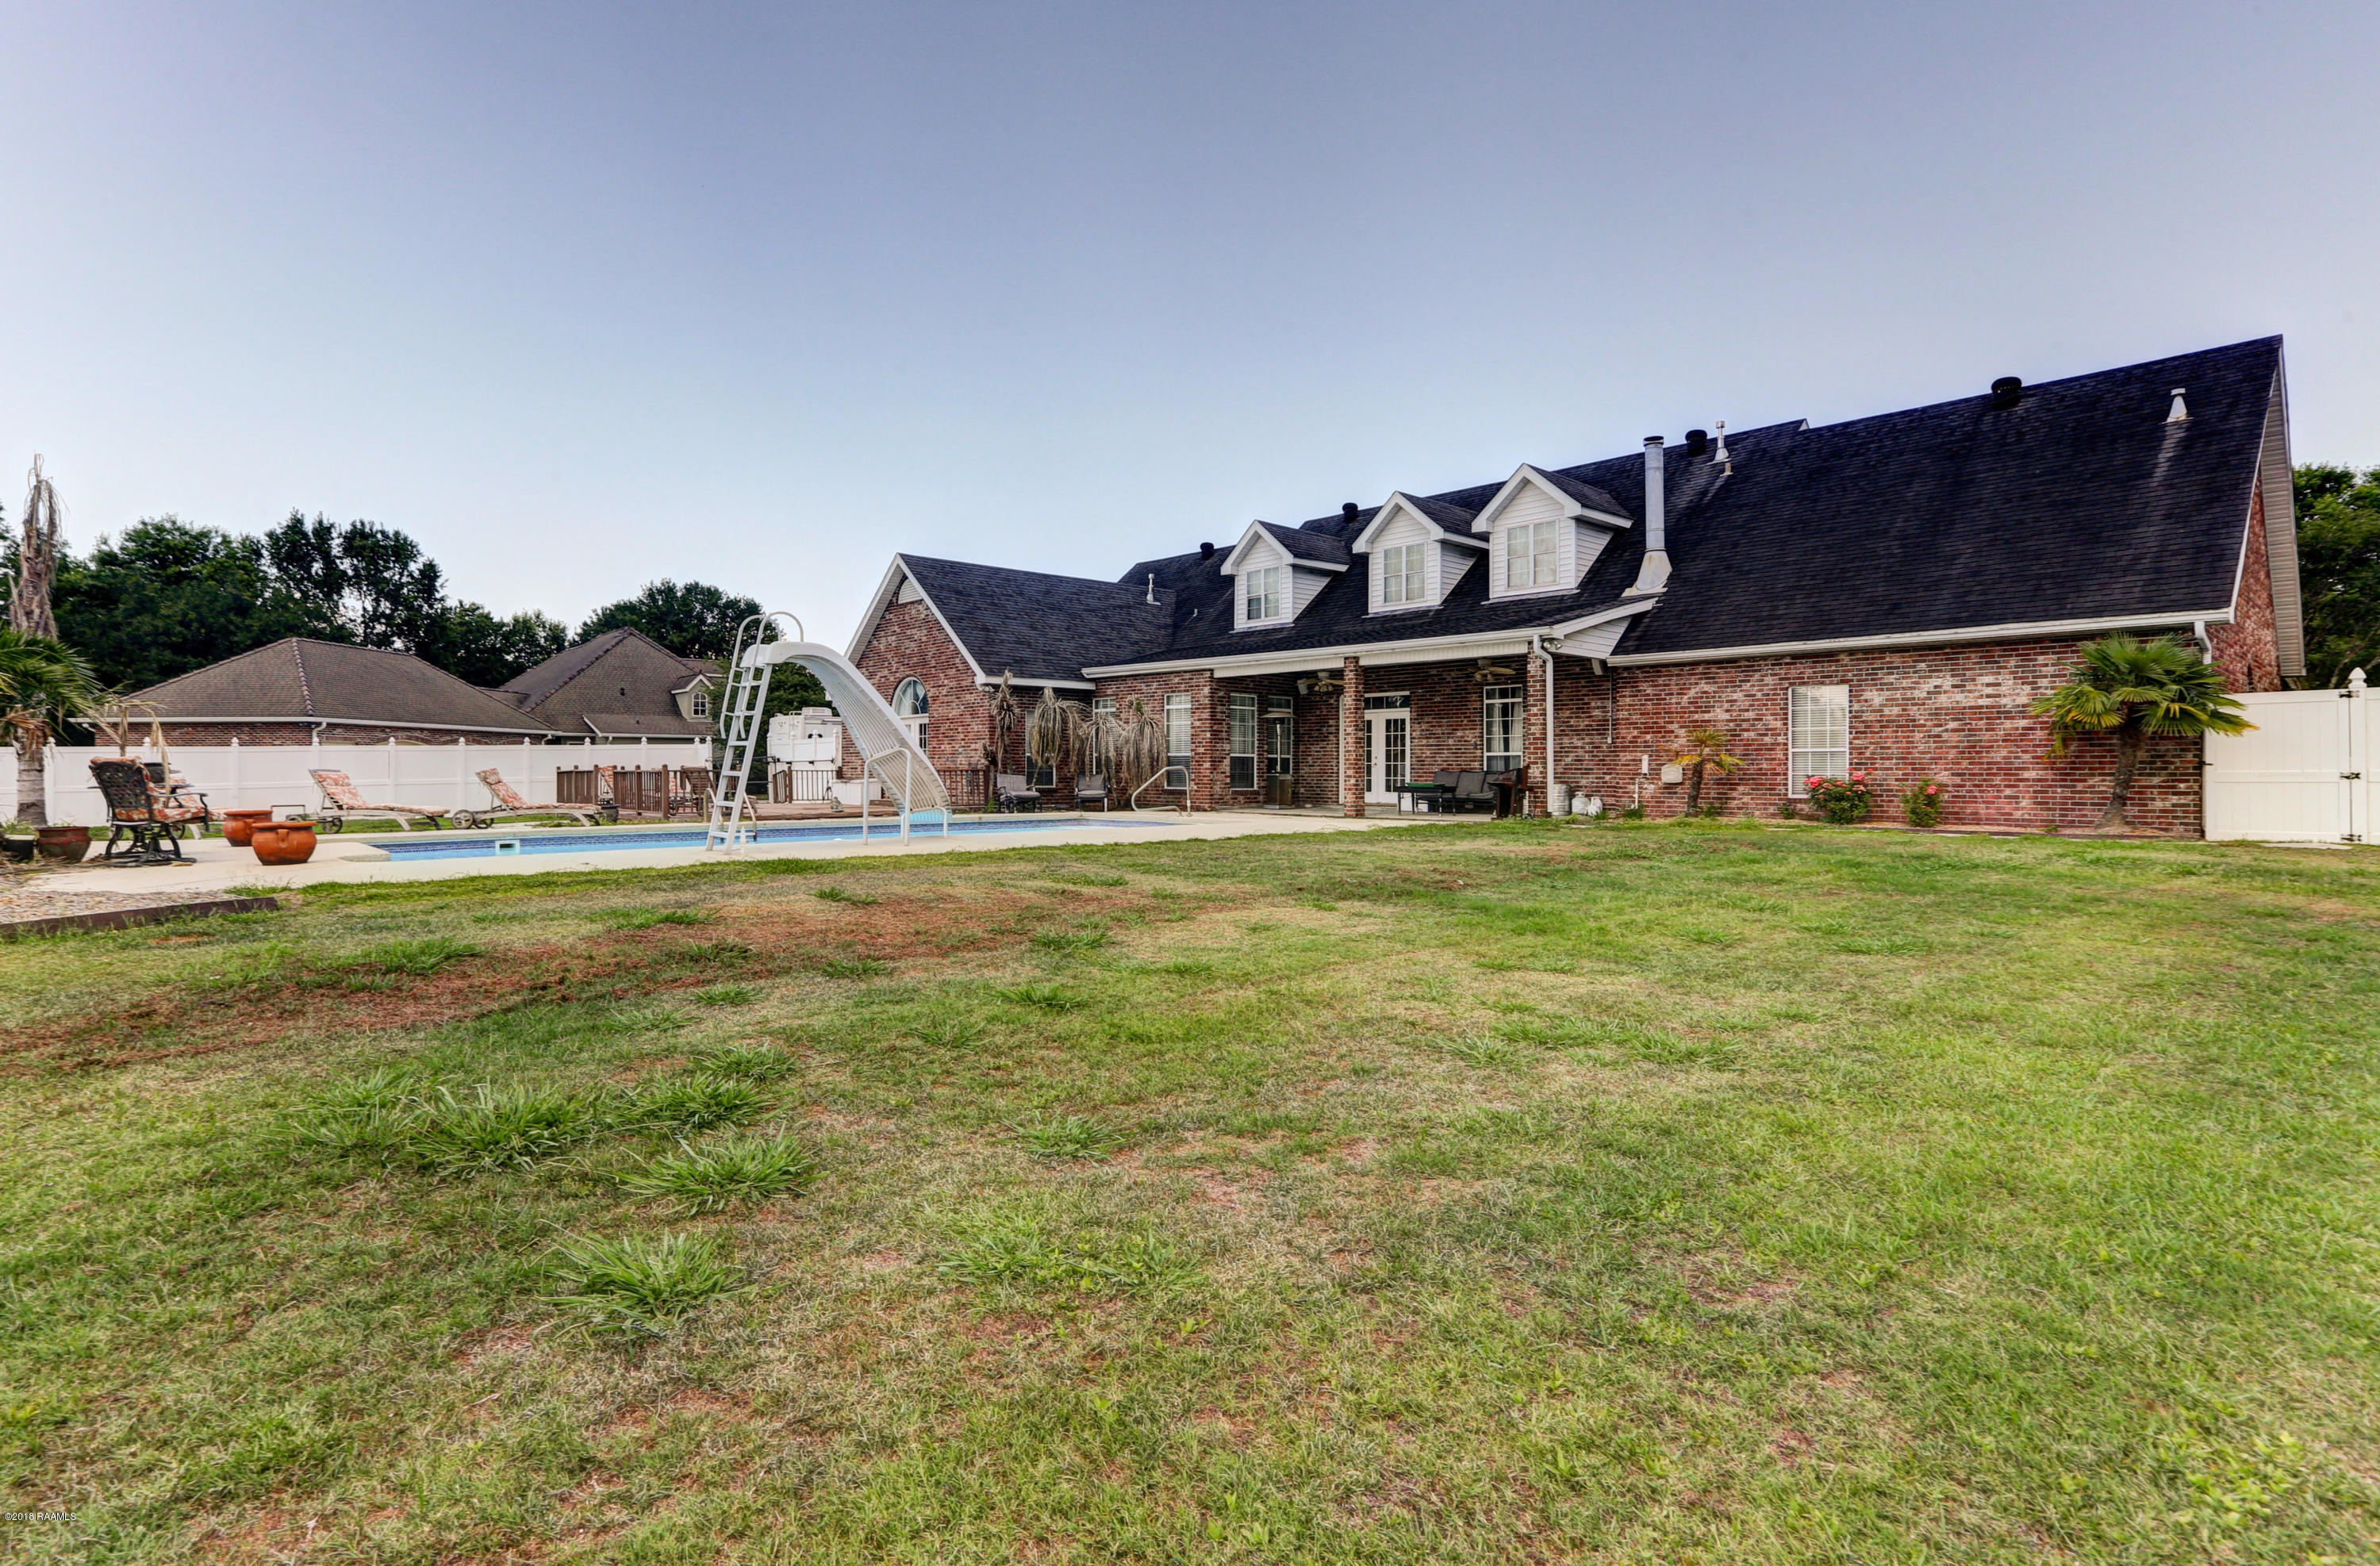 205 Brighton Lane, Berwick, LA 70342 Photo #30